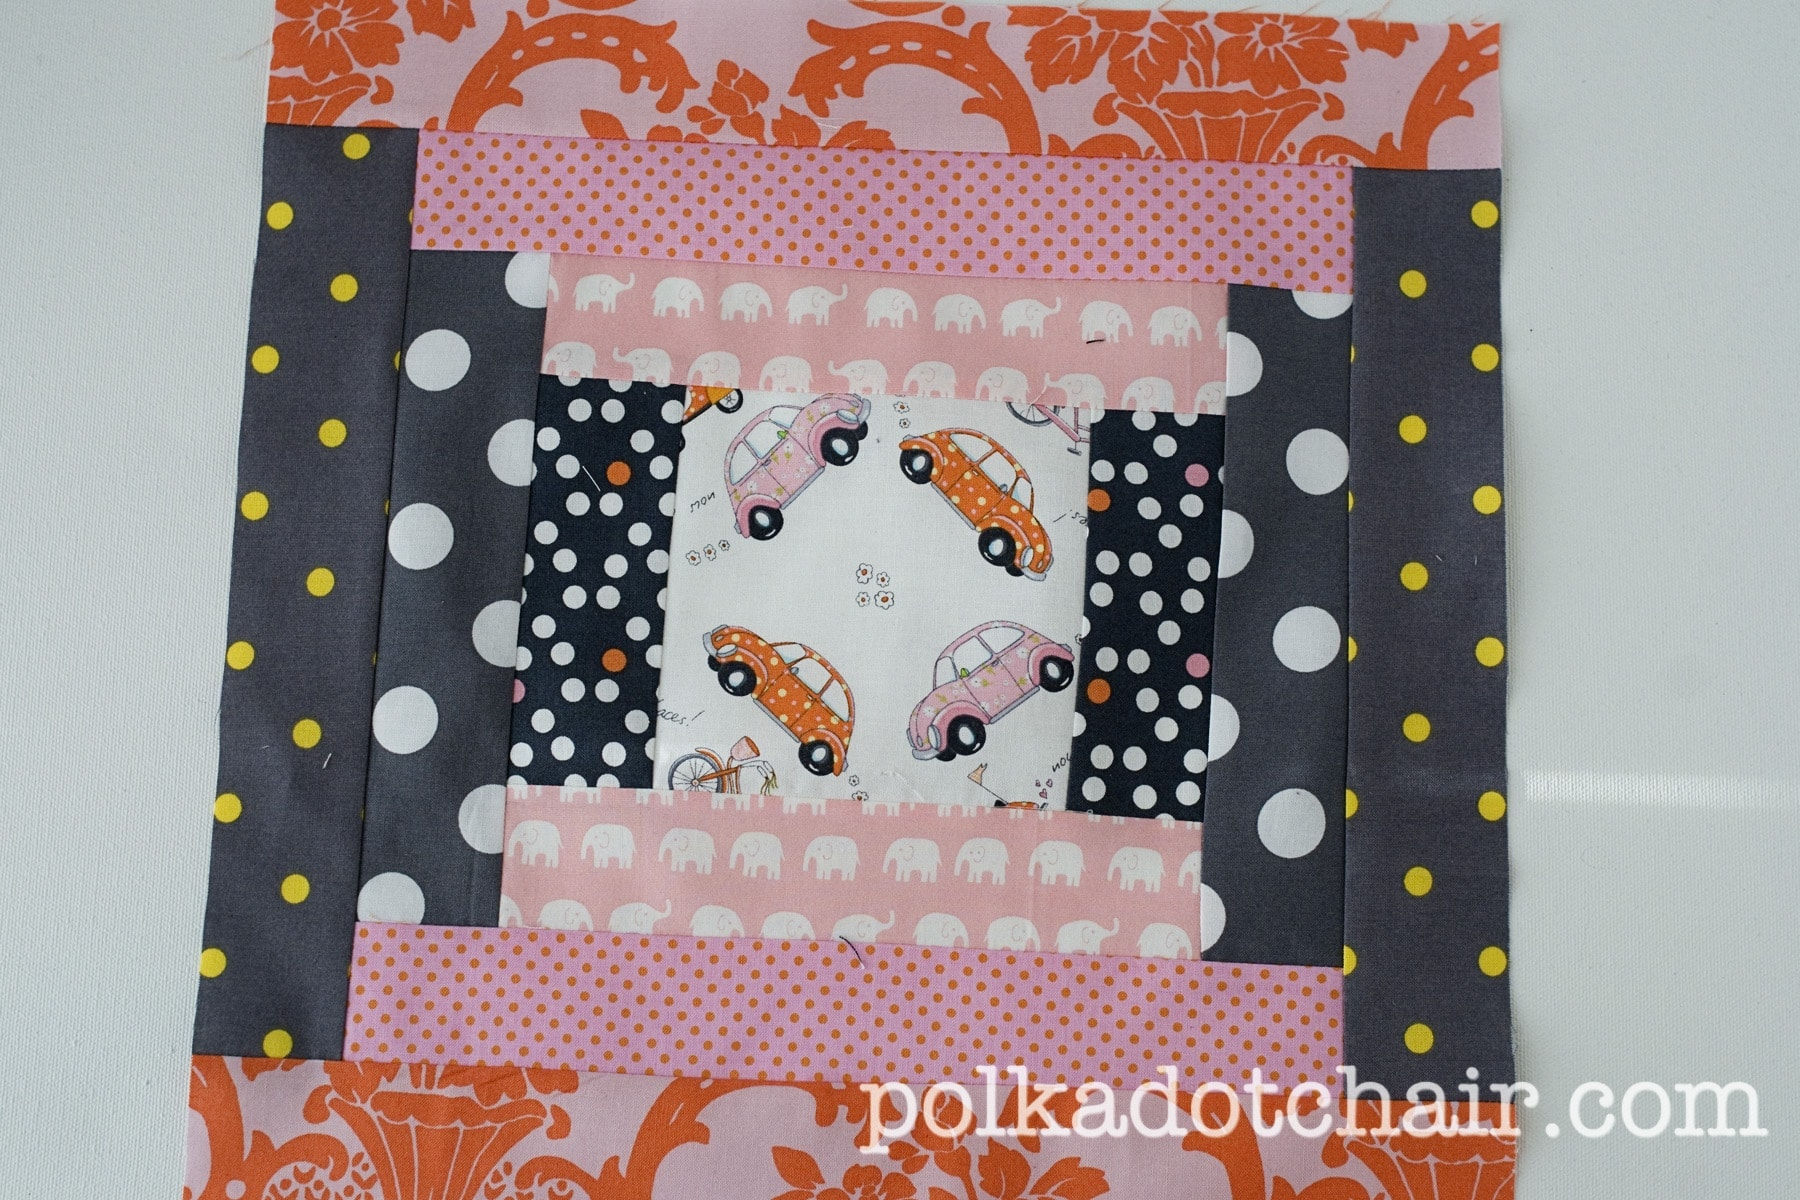 Quilt Now Handmade Christmas Quilt Along: Start Sewing! - The